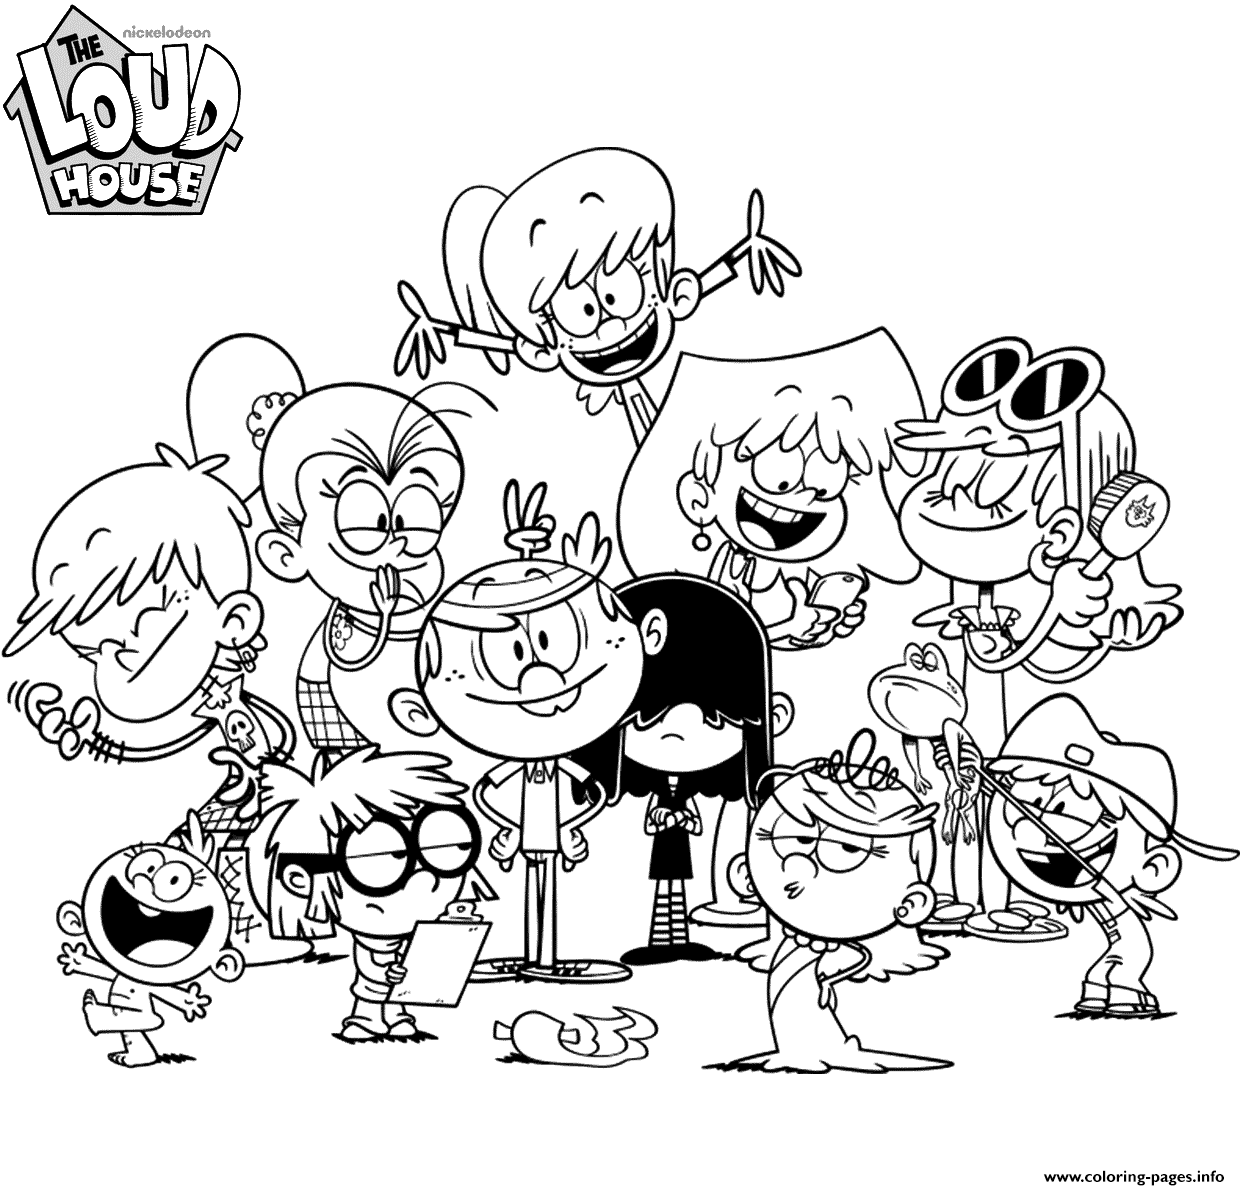 Nickelodeon The Loud House Coloring Pages Printable